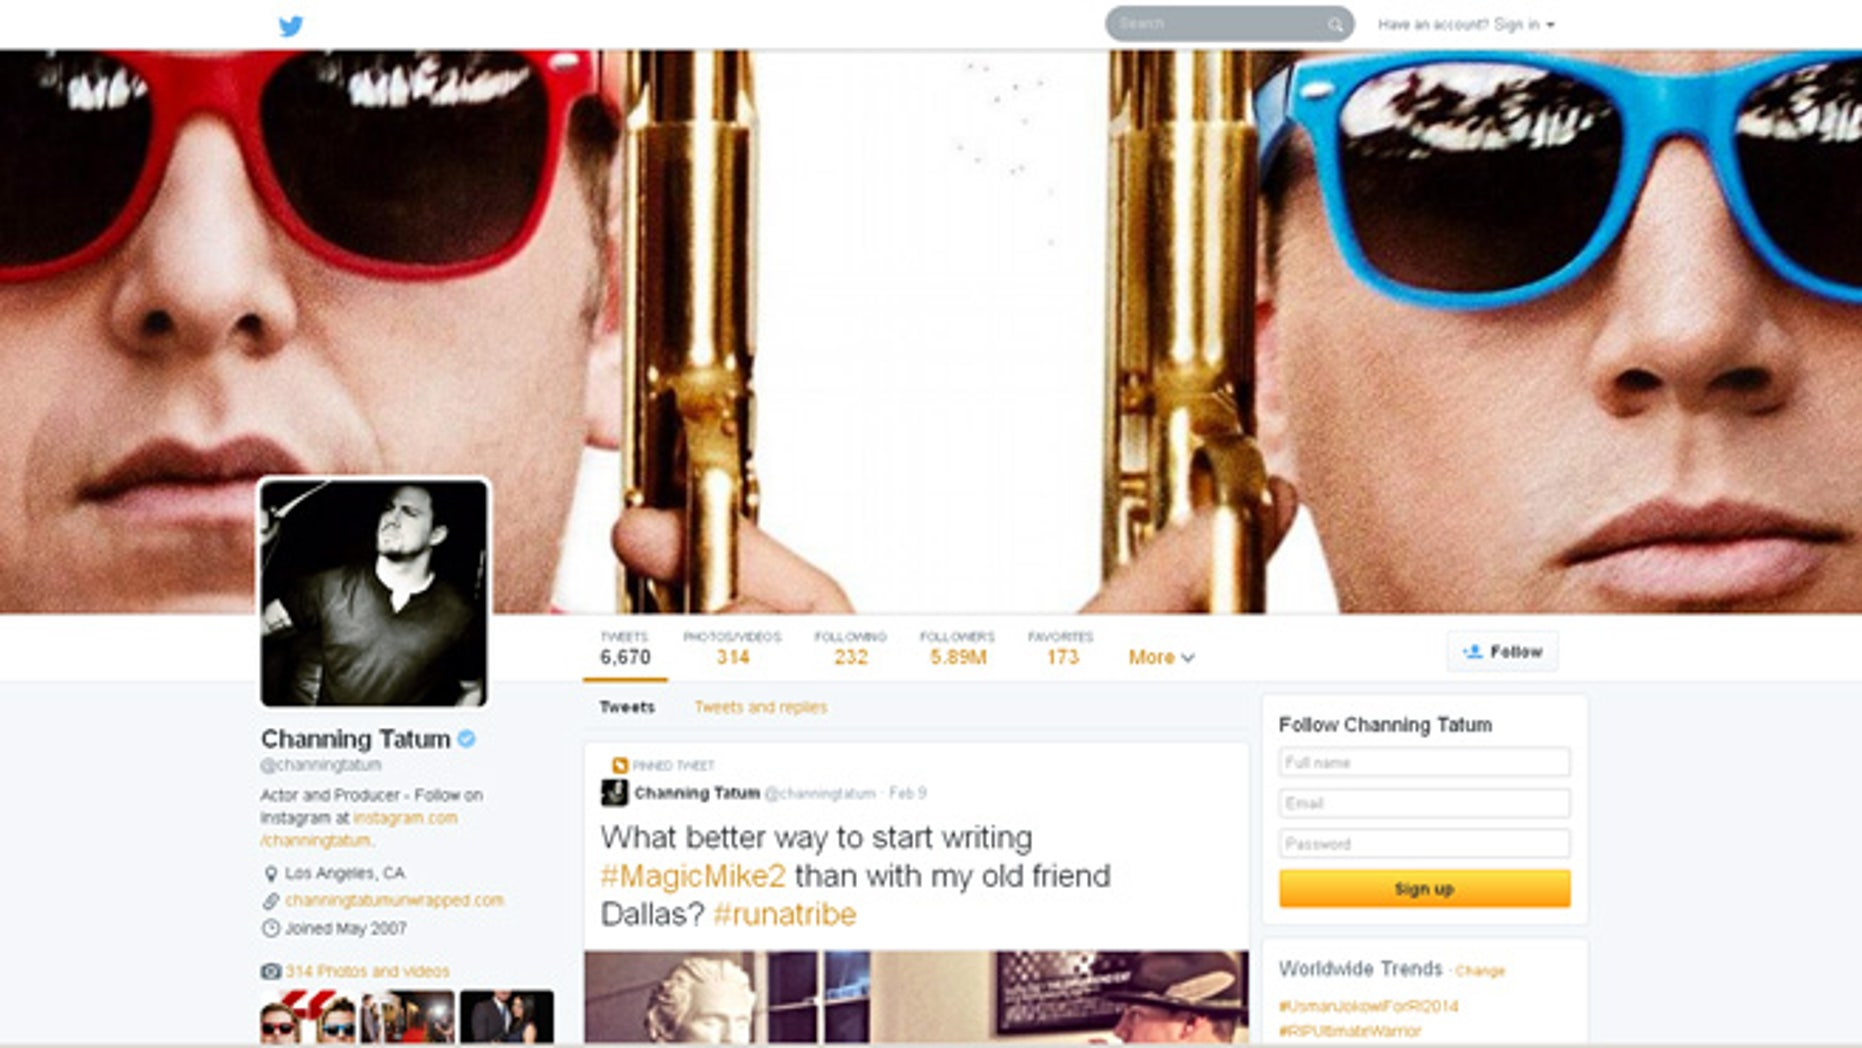 A screenshot of one of Twitter's redesigned profile pages.